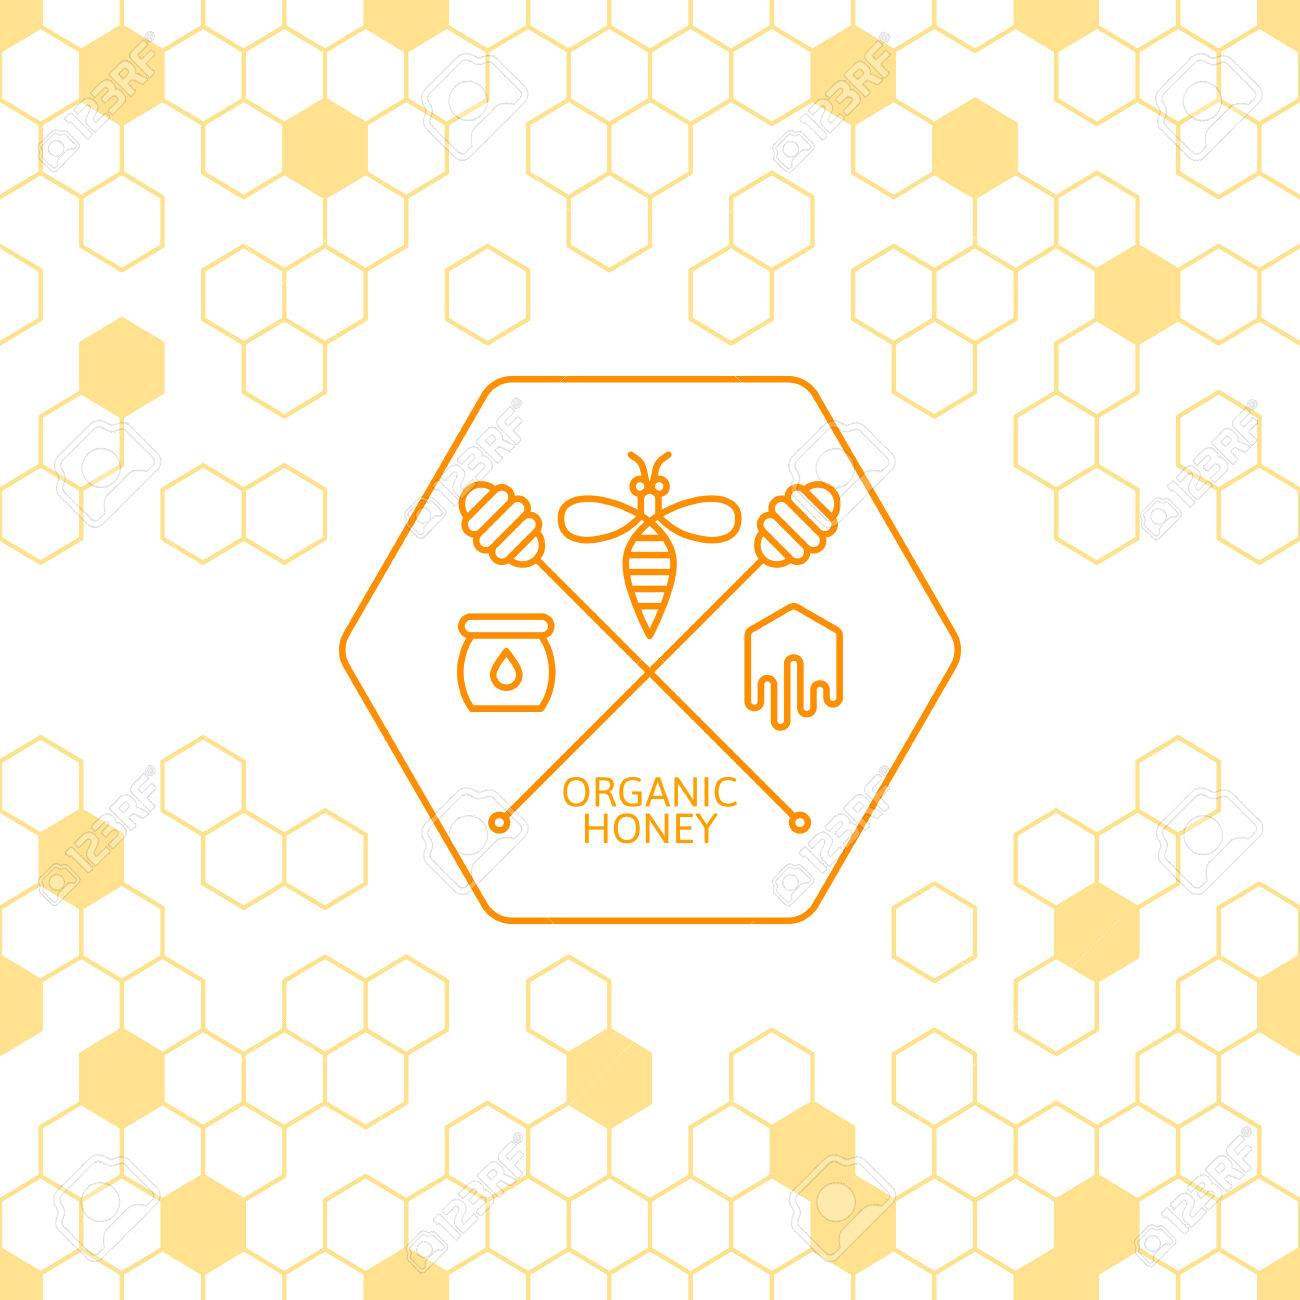 H tag background image - Honey Label Tag Sticker Design Elements Vector Seamless Background With Honeycombs Outline